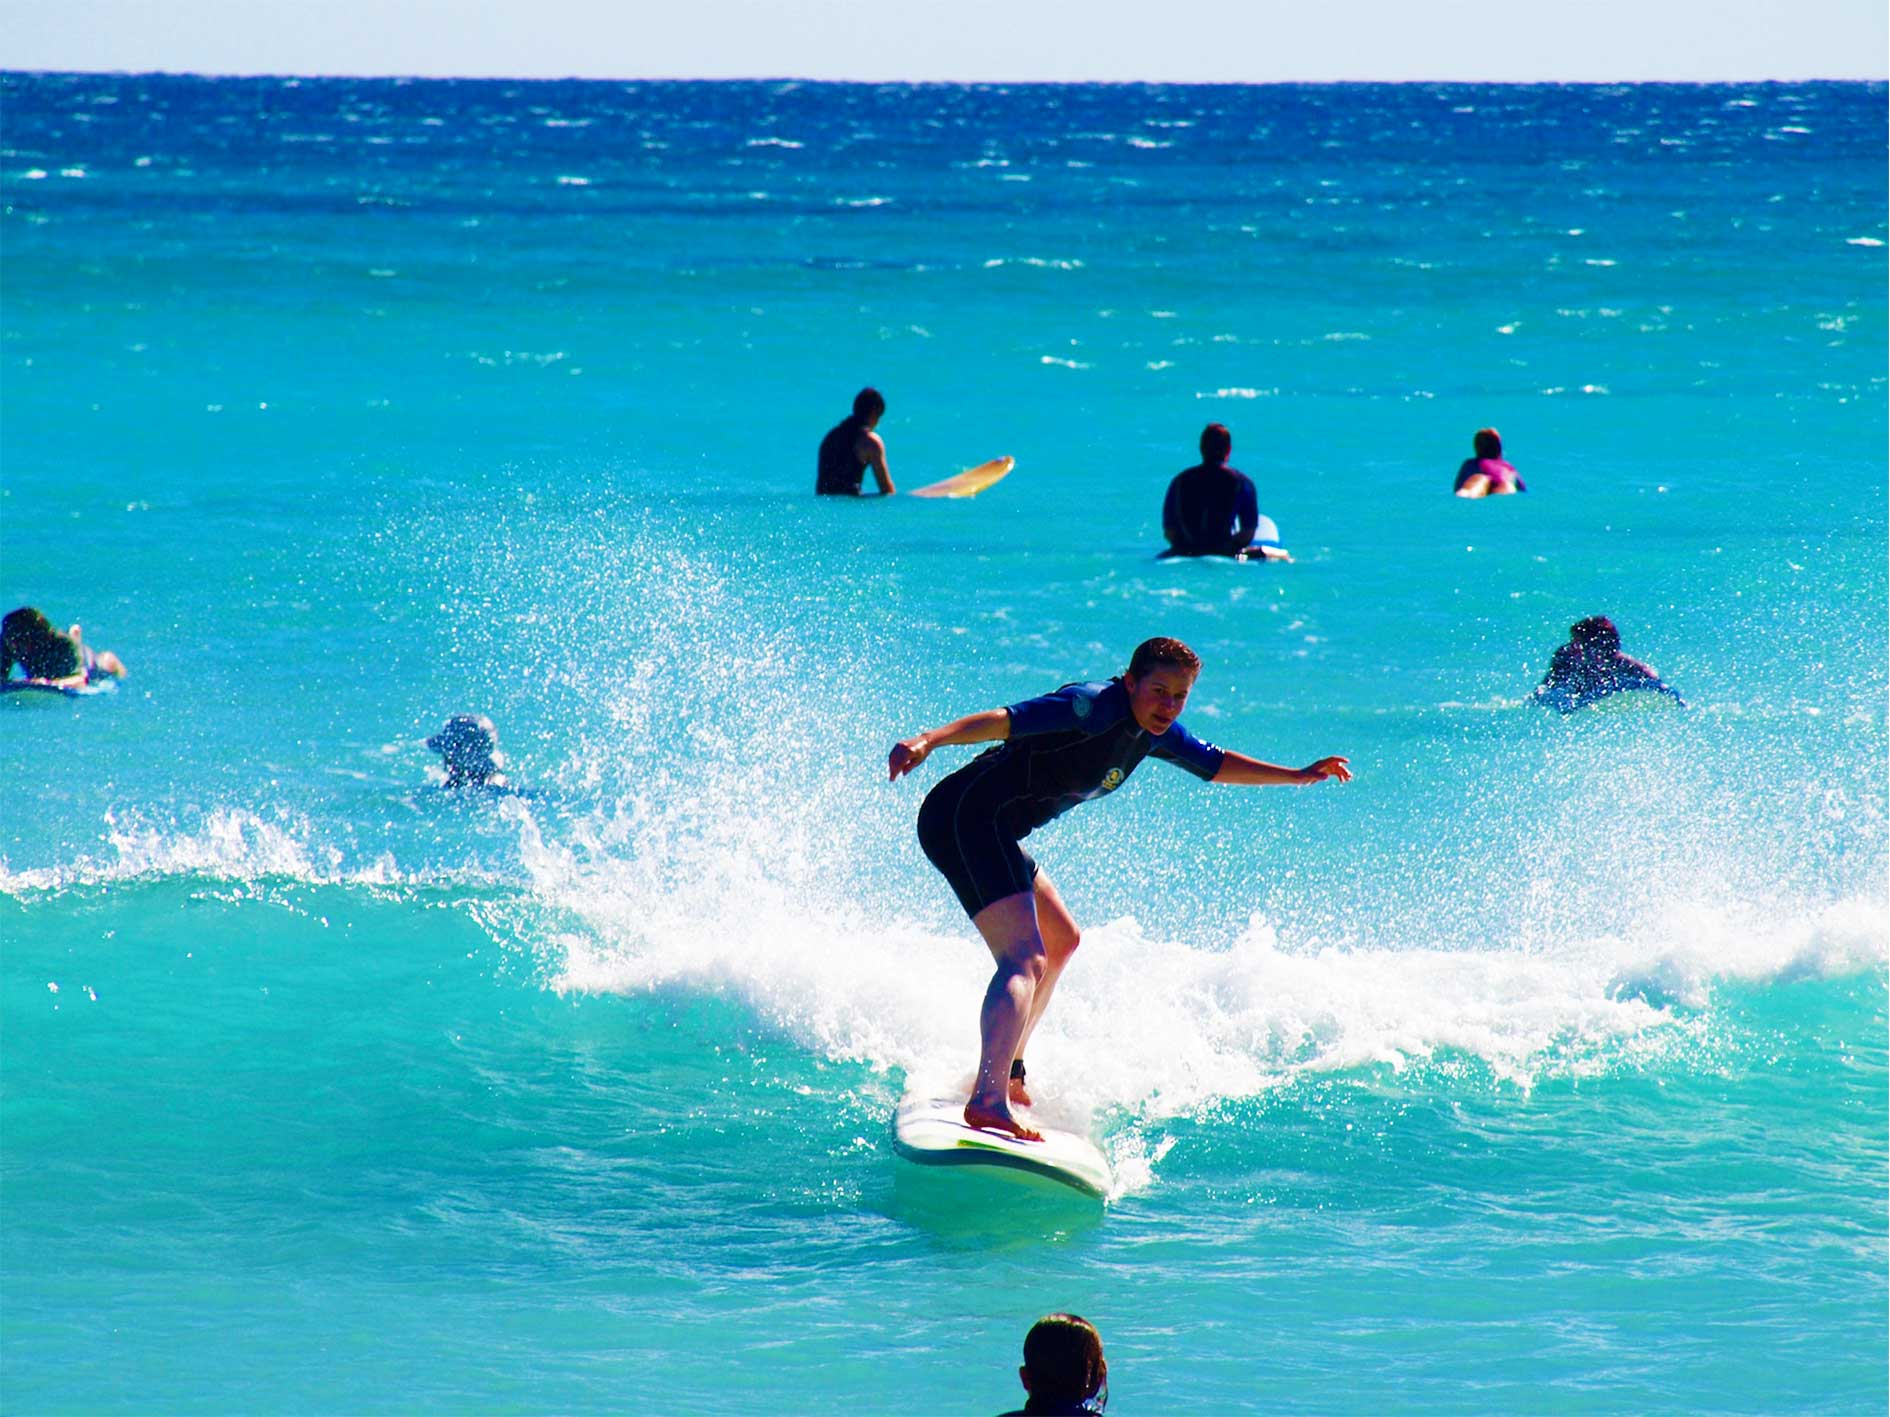 Learn to Surf, Surf Lessons, Beginner, Intermediate, Soft Surfboards, Exmouth, Western Australia, Ningaloo Reef, Gift Vouchers, Gift Vouchers Exmouth, Gift Vouchers Ningaloo, Experience Gifting